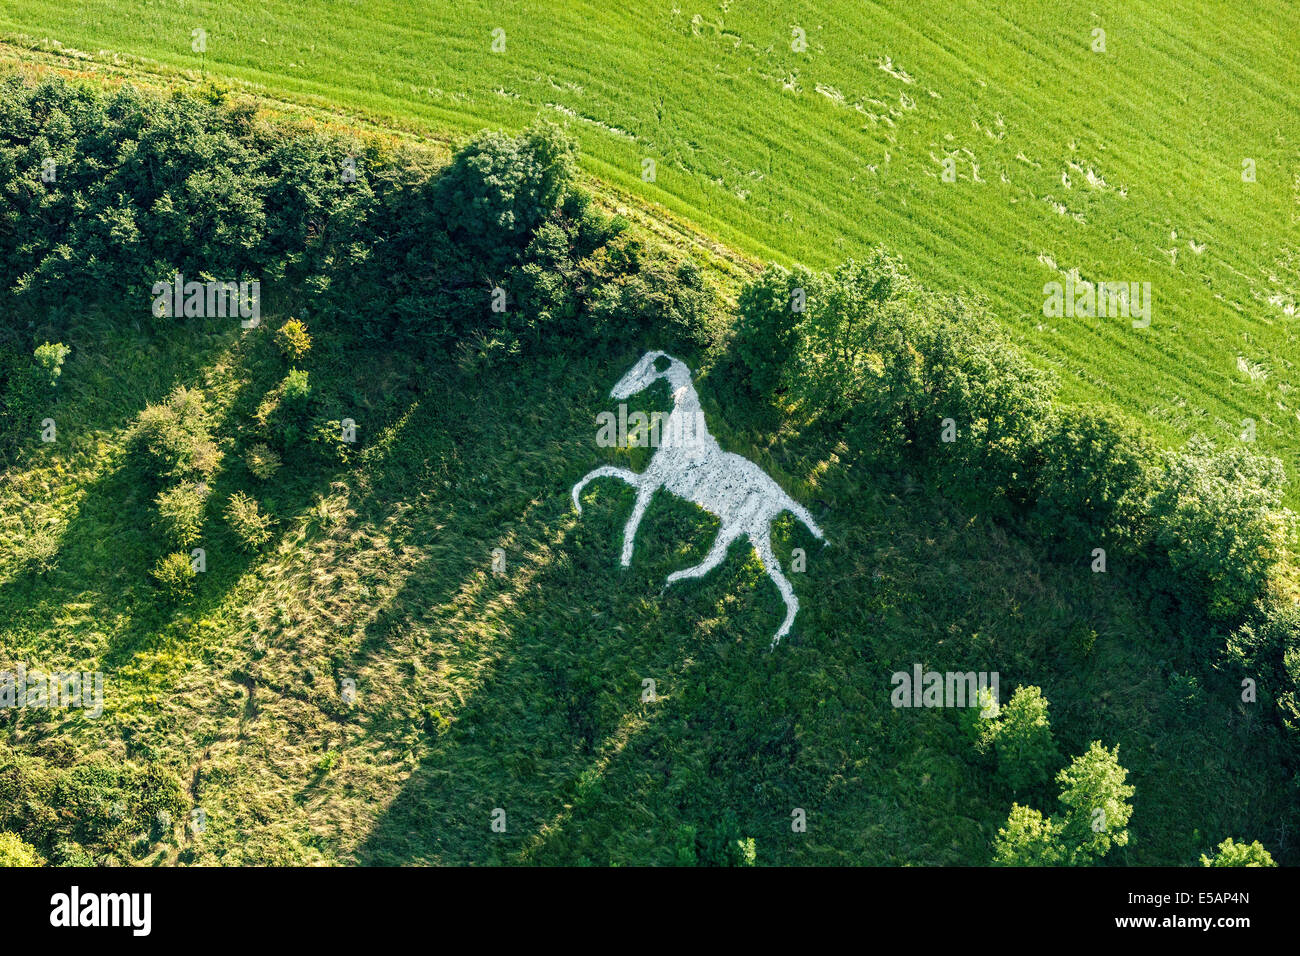 Fascinating Hinton Stock Photos  Hinton Stock Images  Alamy With Remarkable Aerial View Of The White Horse At Broad Town Or Broad Hinton Nr Royal  Wootton With Easy On The Eye White Pebbles Garden Also Fish Garden Ornaments In Addition Home Pesticides For Garden And Waterproof Garden Furniture Covers Uk As Well As A Secret Garden Additionally Clearance Rattan Garden Furniture From Alamycom With   Remarkable Hinton Stock Photos  Hinton Stock Images  Alamy With Easy On The Eye Aerial View Of The White Horse At Broad Town Or Broad Hinton Nr Royal  Wootton And Fascinating White Pebbles Garden Also Fish Garden Ornaments In Addition Home Pesticides For Garden From Alamycom